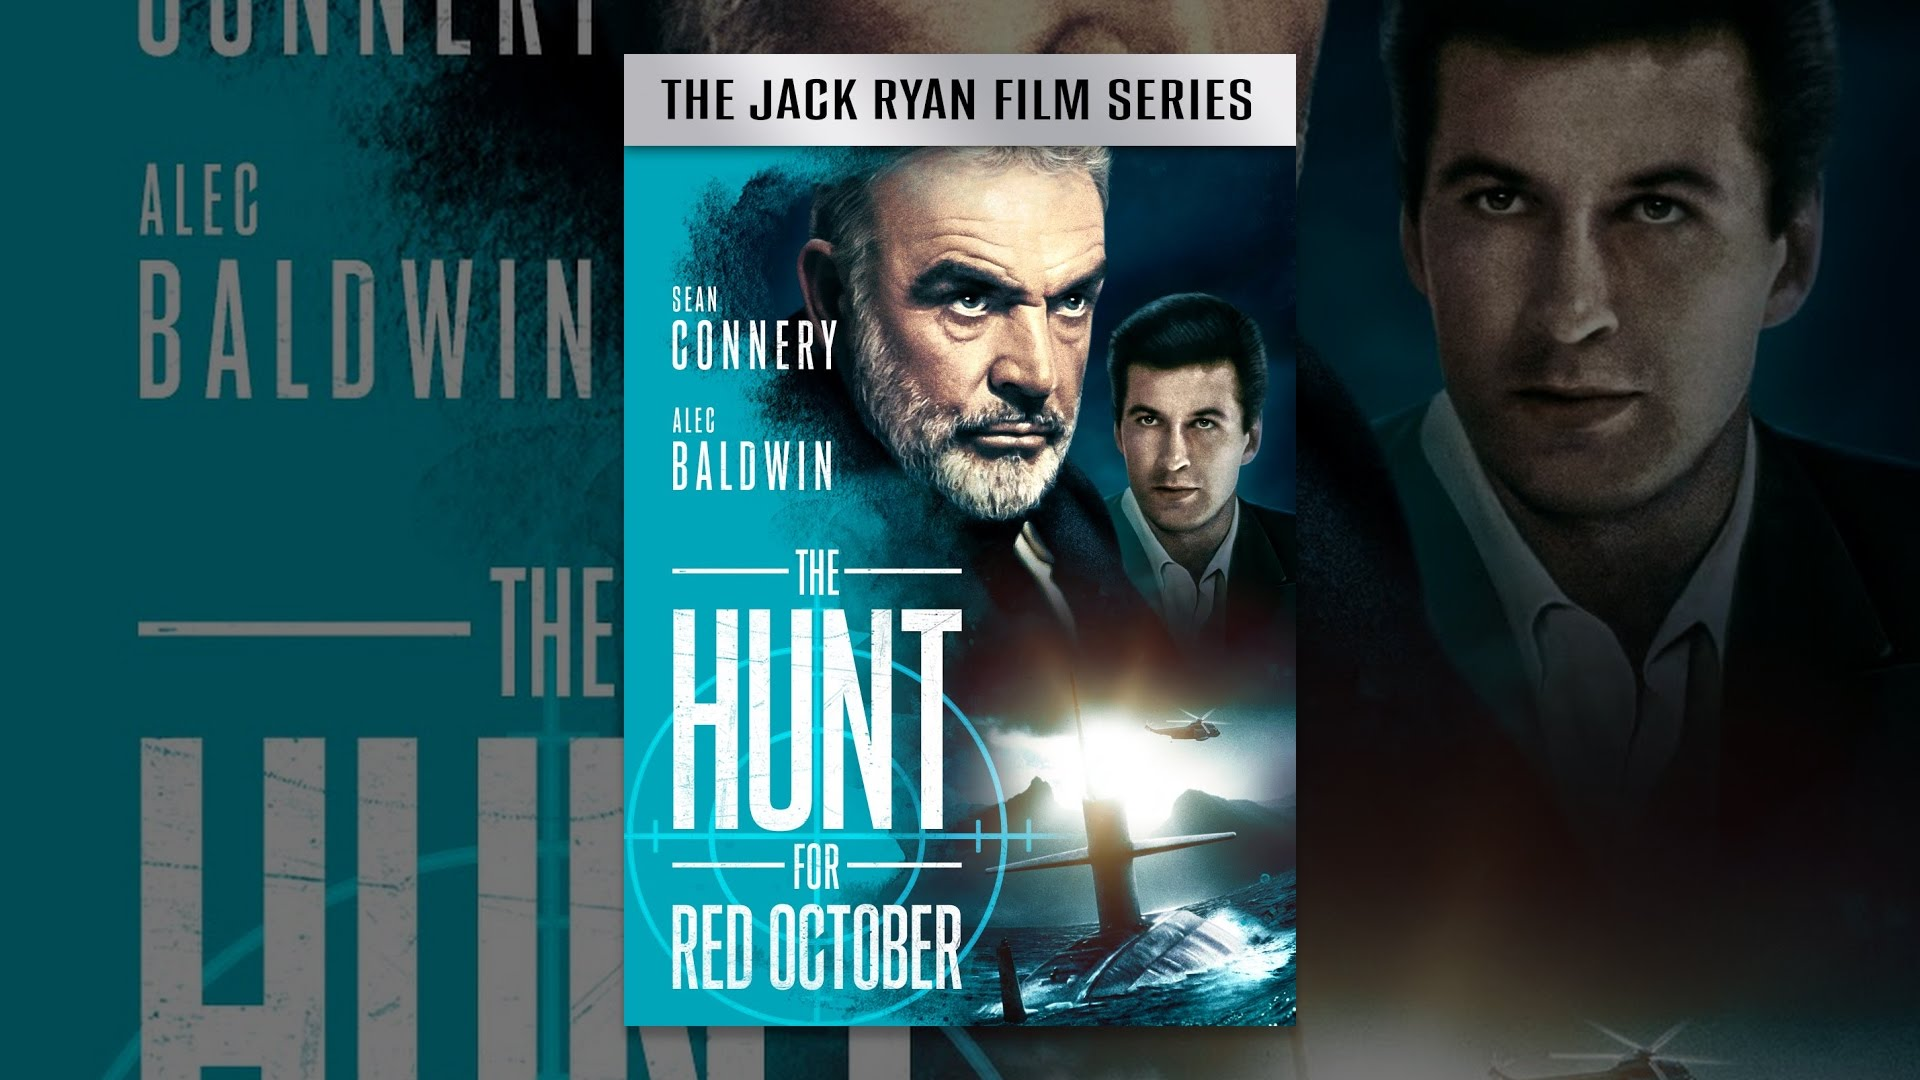 The Hunt for Red October HD Movie HD free download 720p